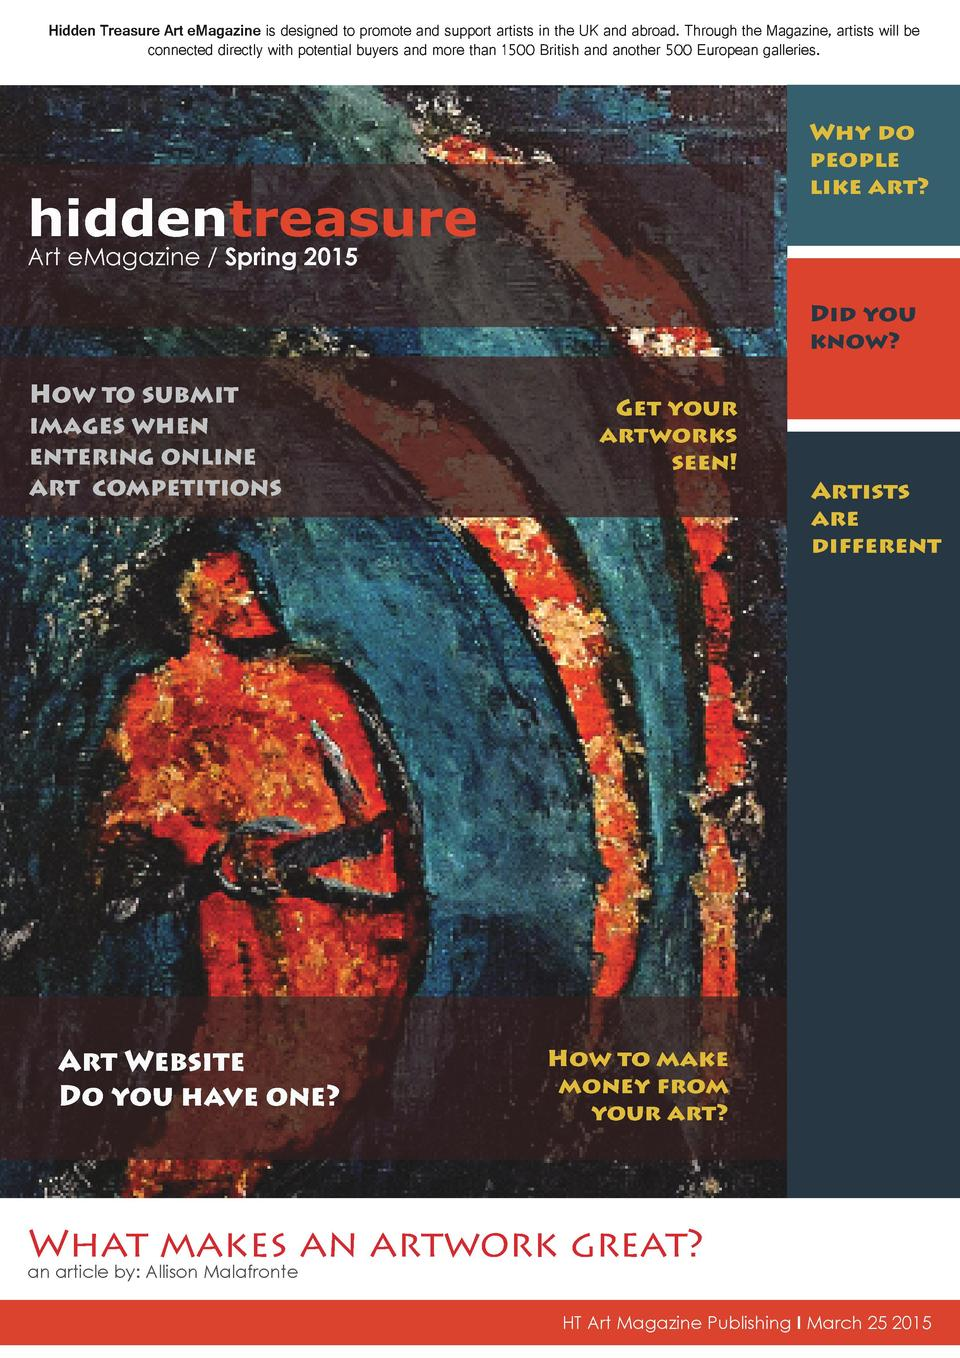 Hidden Treasure Art eMagazine is designed to promote and support artists in the UK and abroad. Through the Magazine, artis...